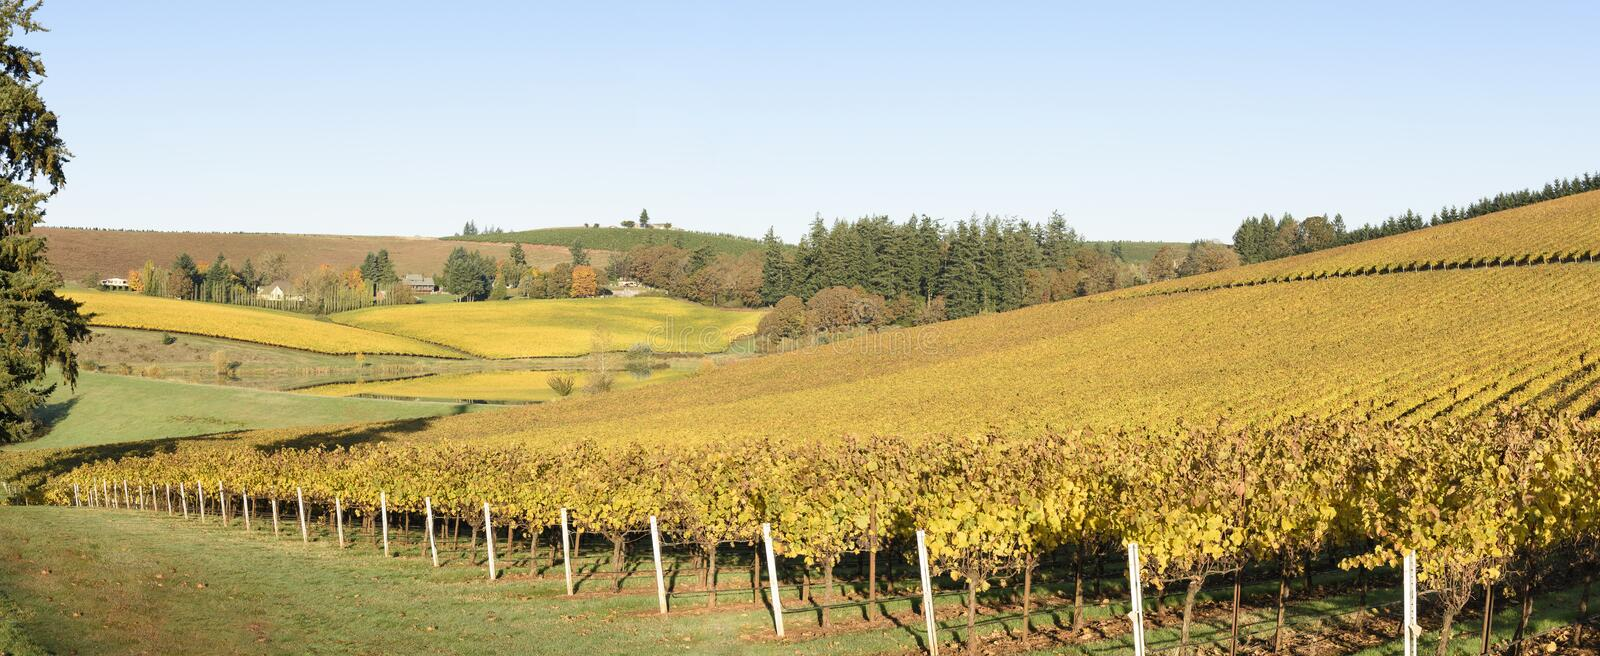 Fall Morning Colors of Vineyards in the Mid Willamette Valley, Marion County, Western Oregon. Vineyards in the Mid Willamette Valley stock image